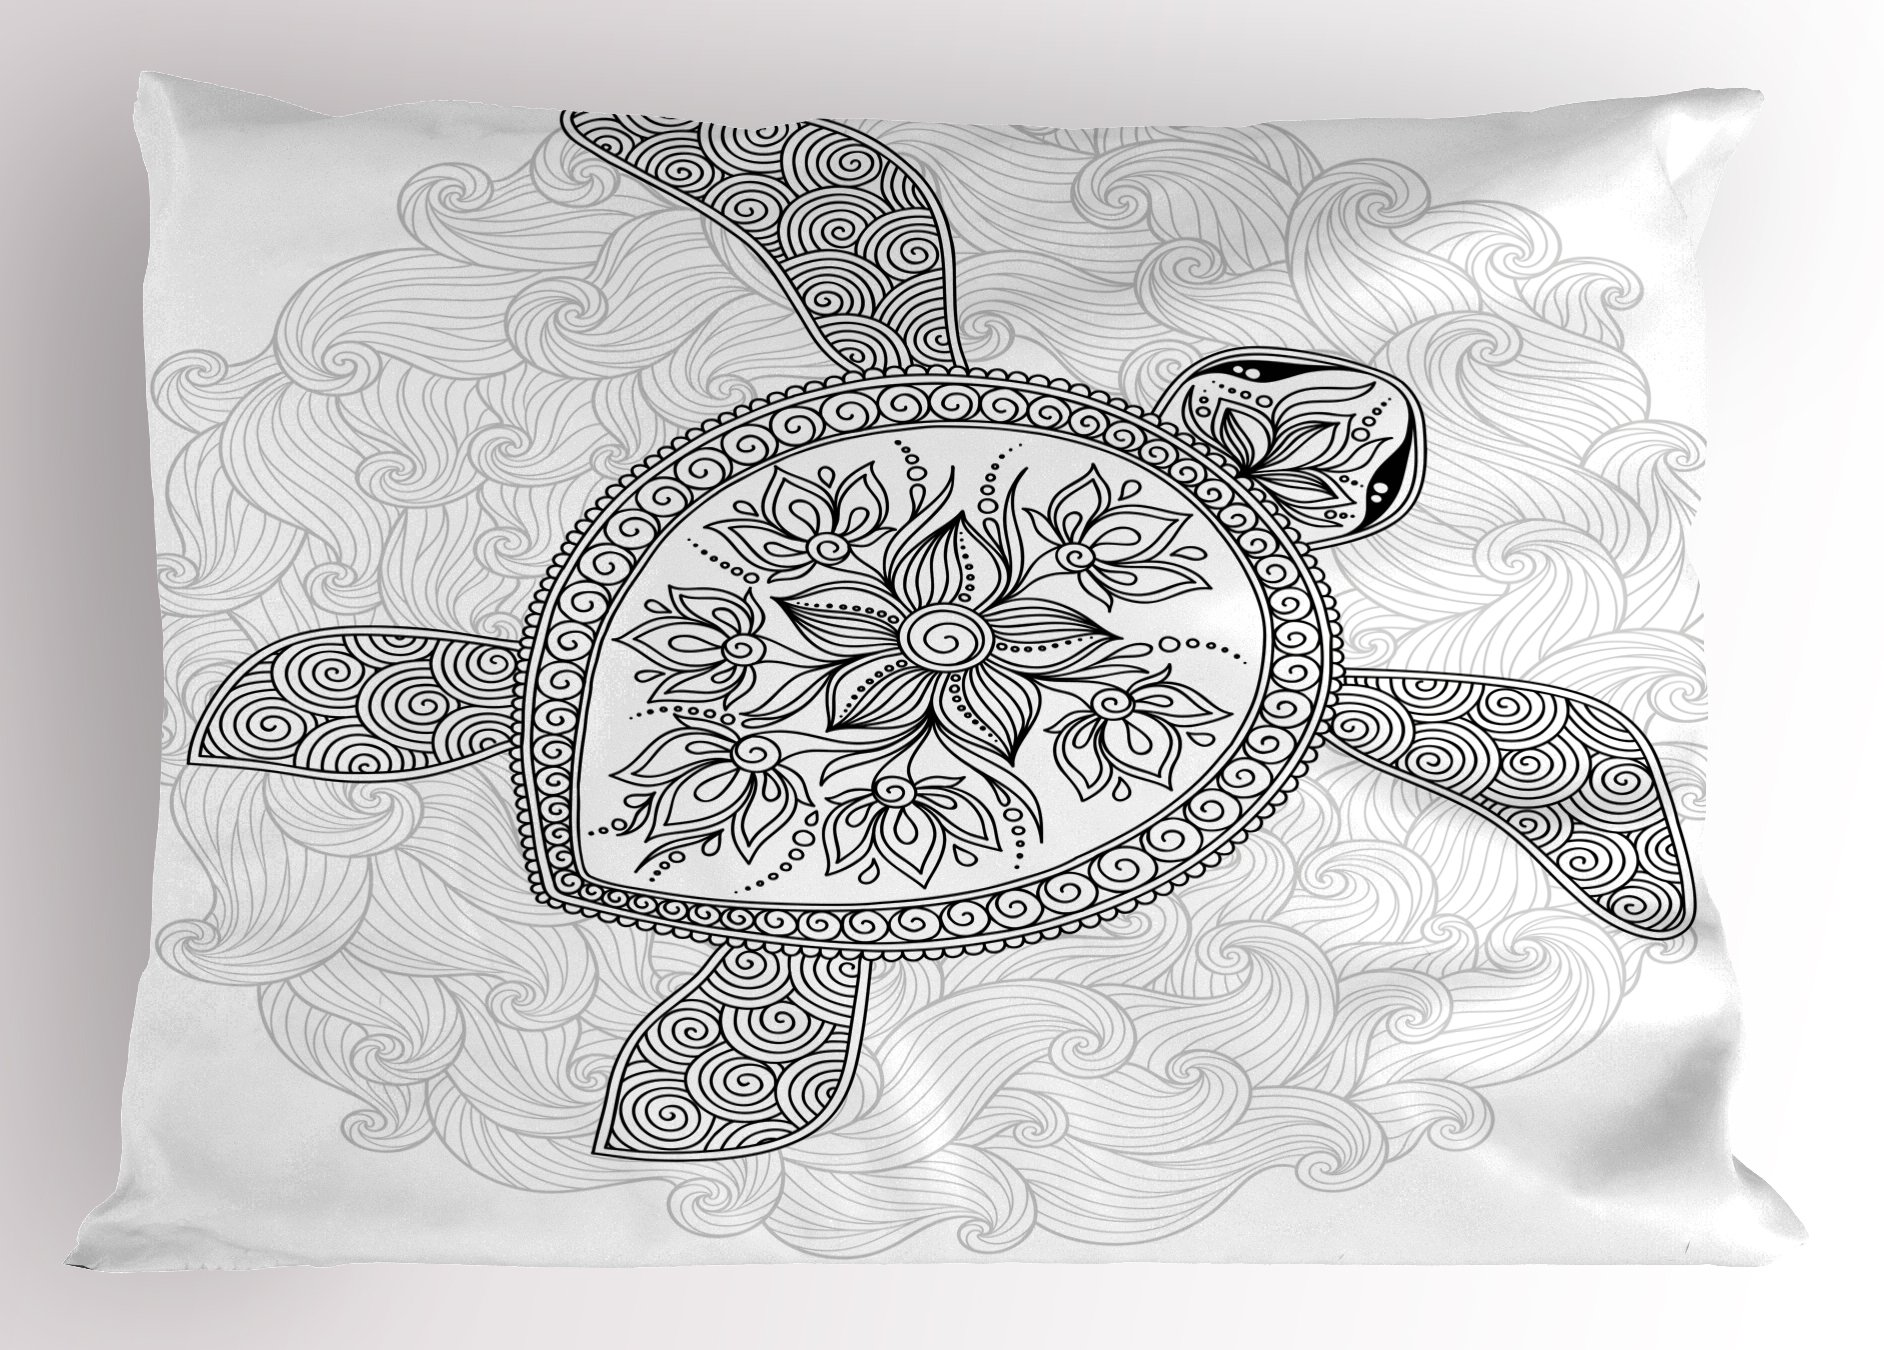 Lunarable Turtle Pillow Sham, Ethnic Motifs on an Ocean Animal with Curves and Swirls Monochrome Doodle Art, Decorative Standard King Size Printed Pillowcase, 36 X 20 inches, Black and White